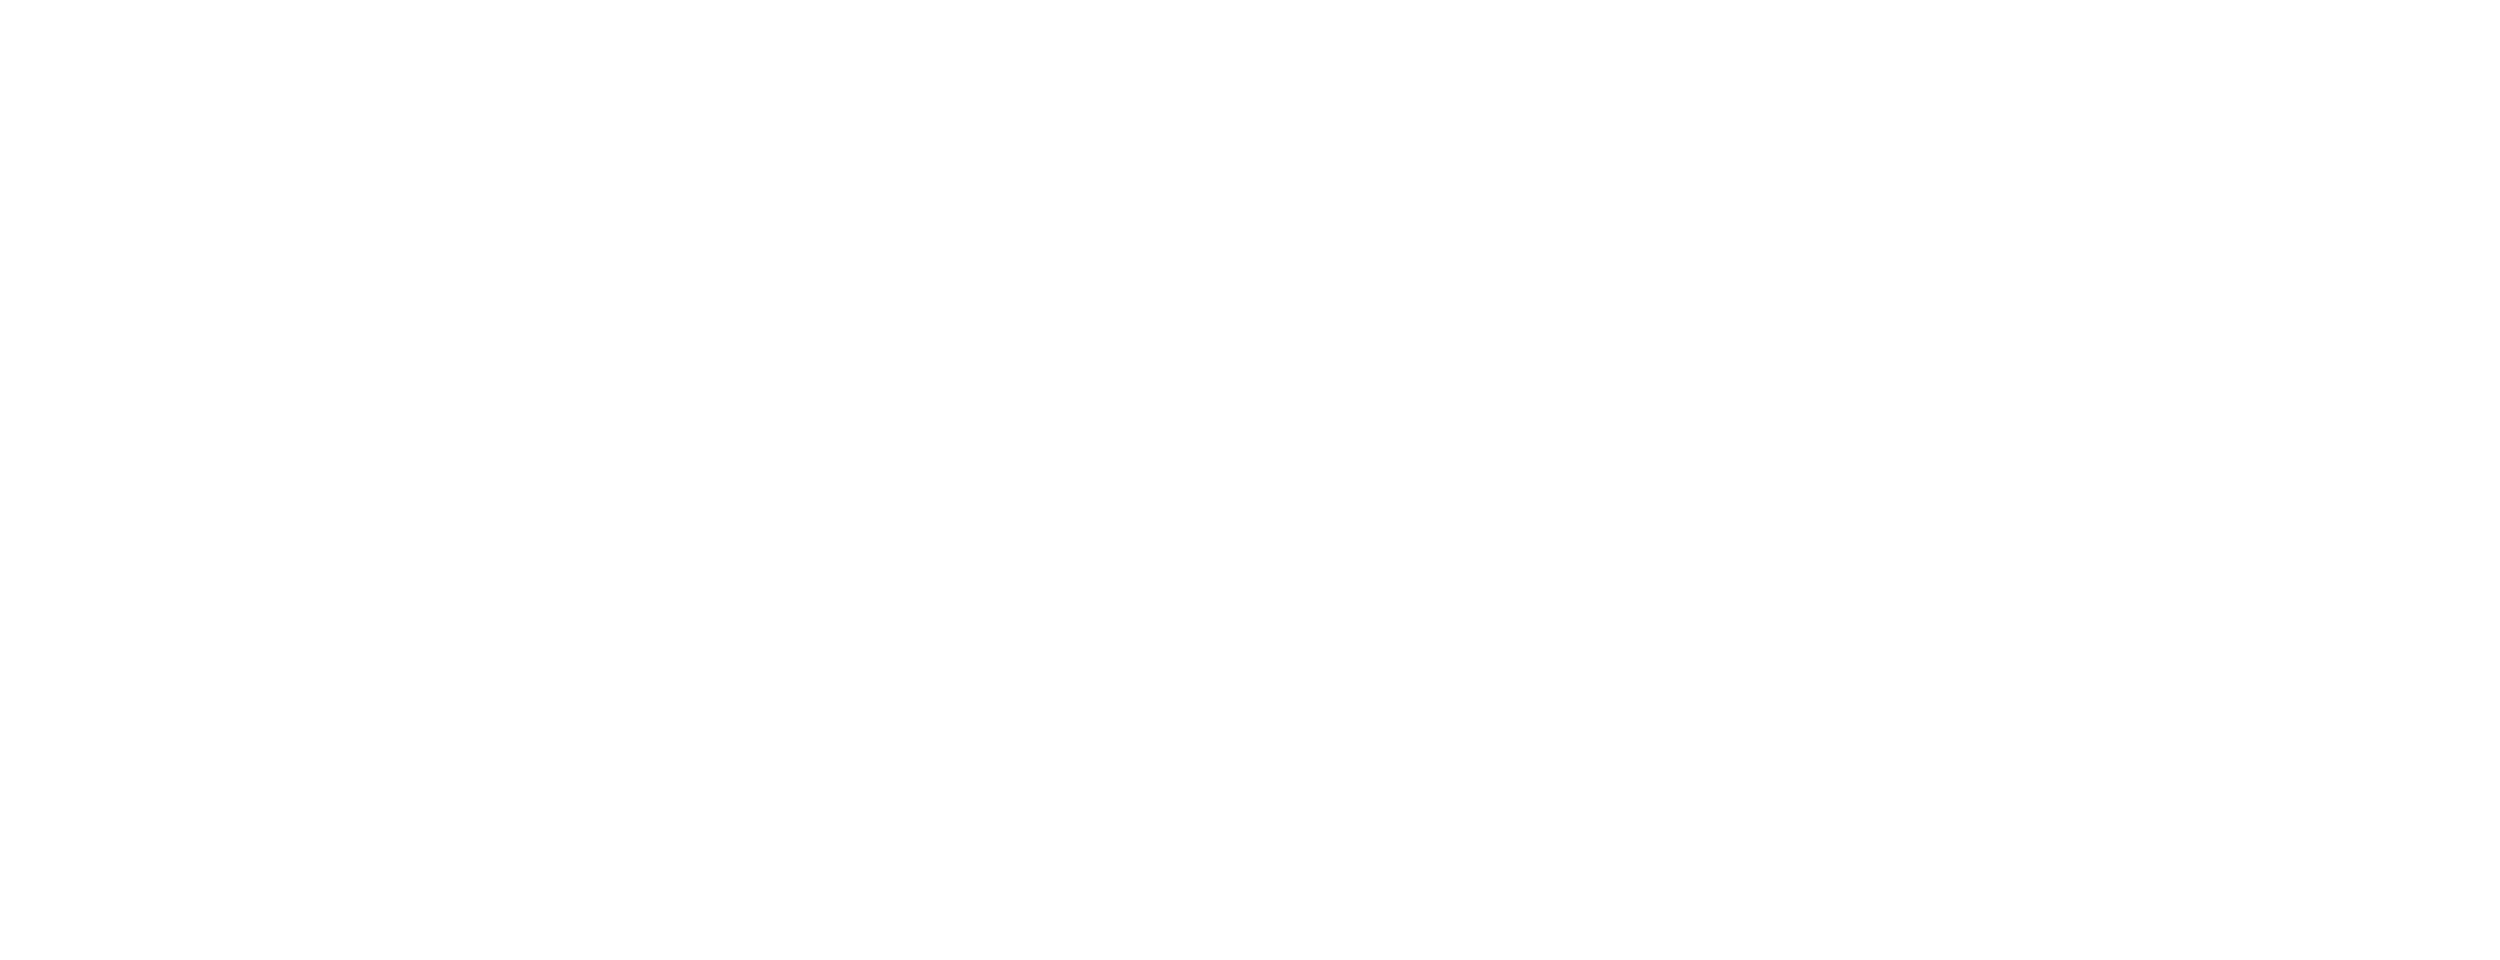 _Blockchain Theory Logo Font (White Transparent) (1).png